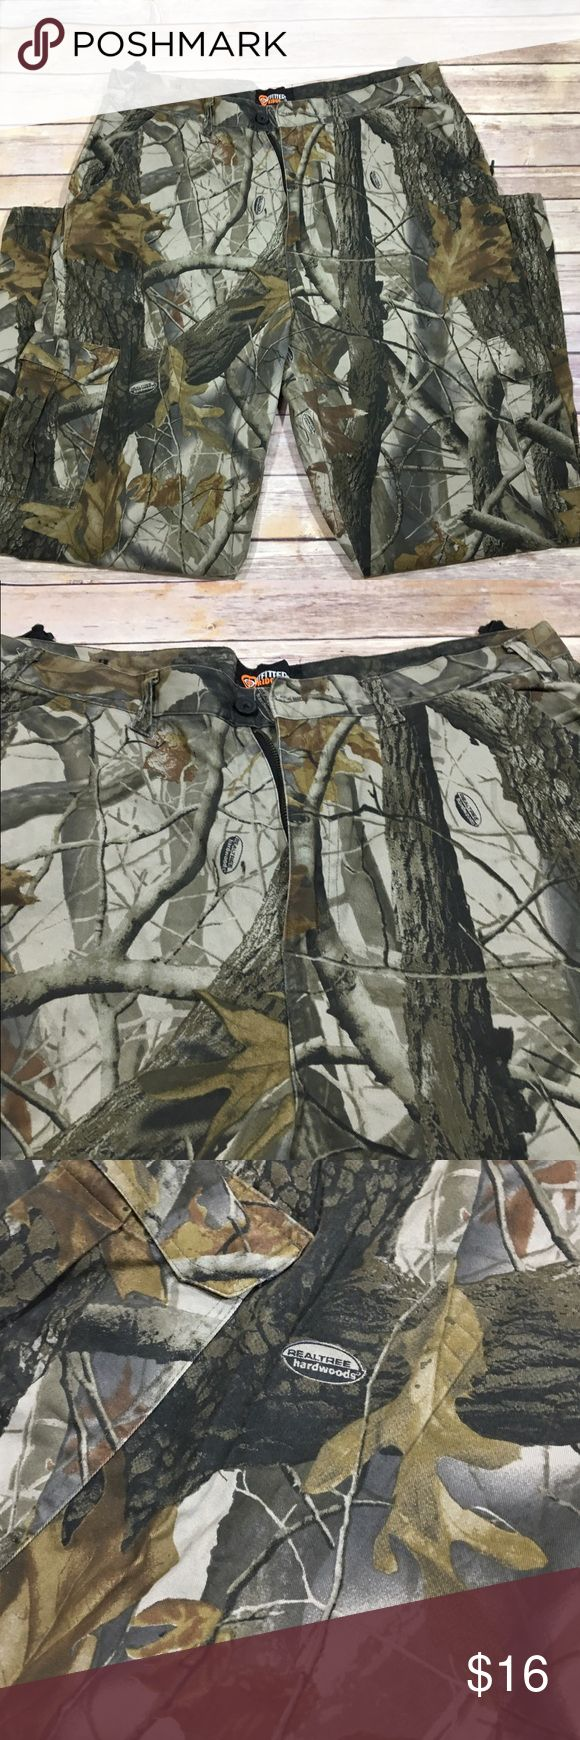 Outfitters Ridge Mens Realtree Camo Pants, L 36/38 Outfitters Ridge Mens Camo Hunting Pants  Realtree Hardwood Camo Adjustable Waist and Ankles Size: Large 36/38 100% Cotton Made in Bangladesh Excellent Used Condition Outfitters Pants